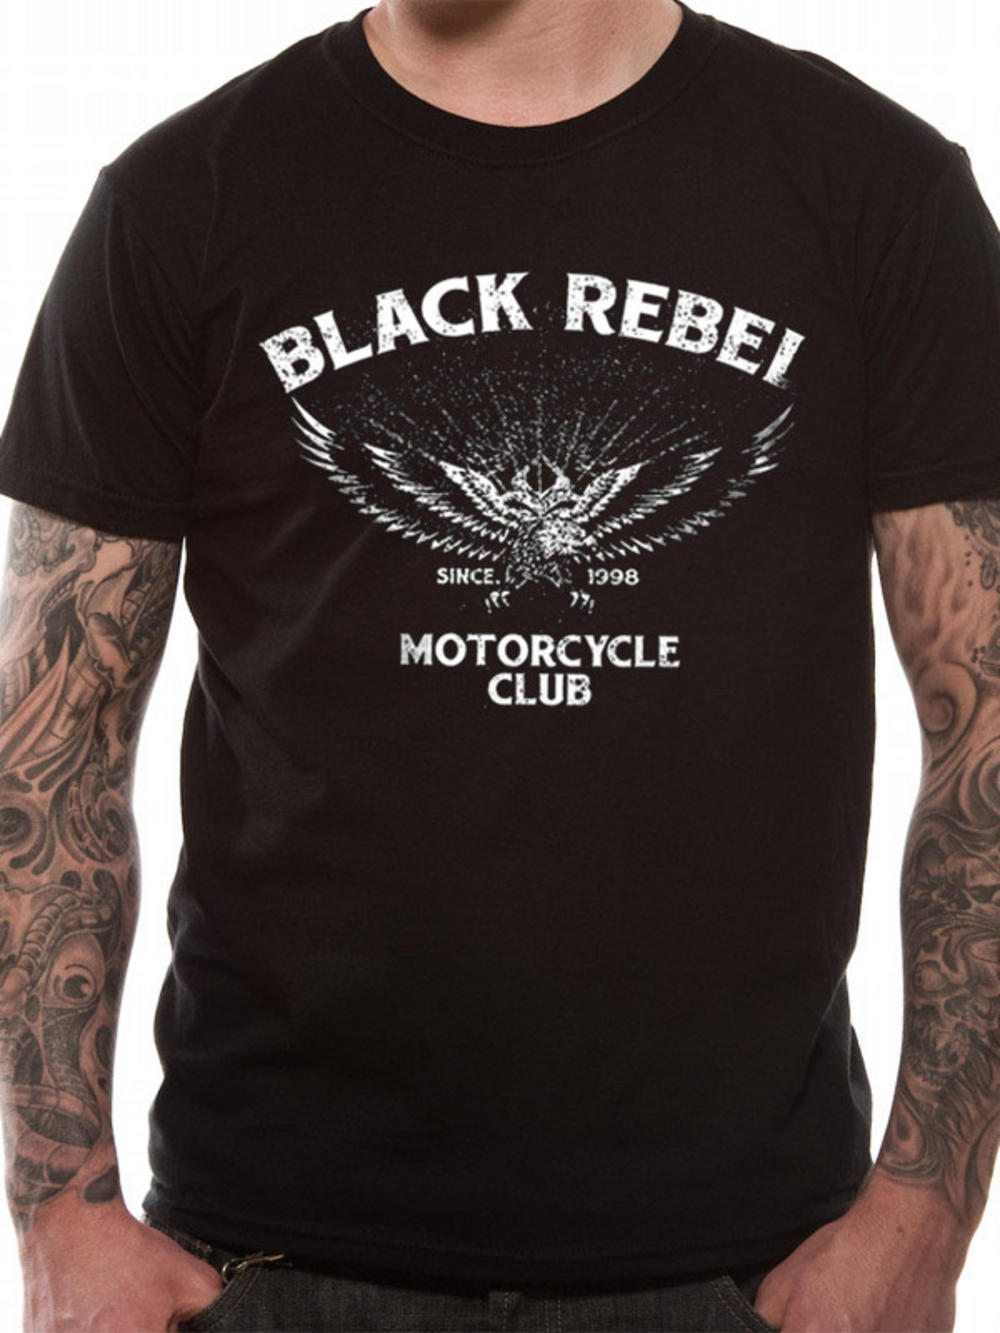 Black rebel motorcycle club logo t shirt tm shop for T shirts for clubs